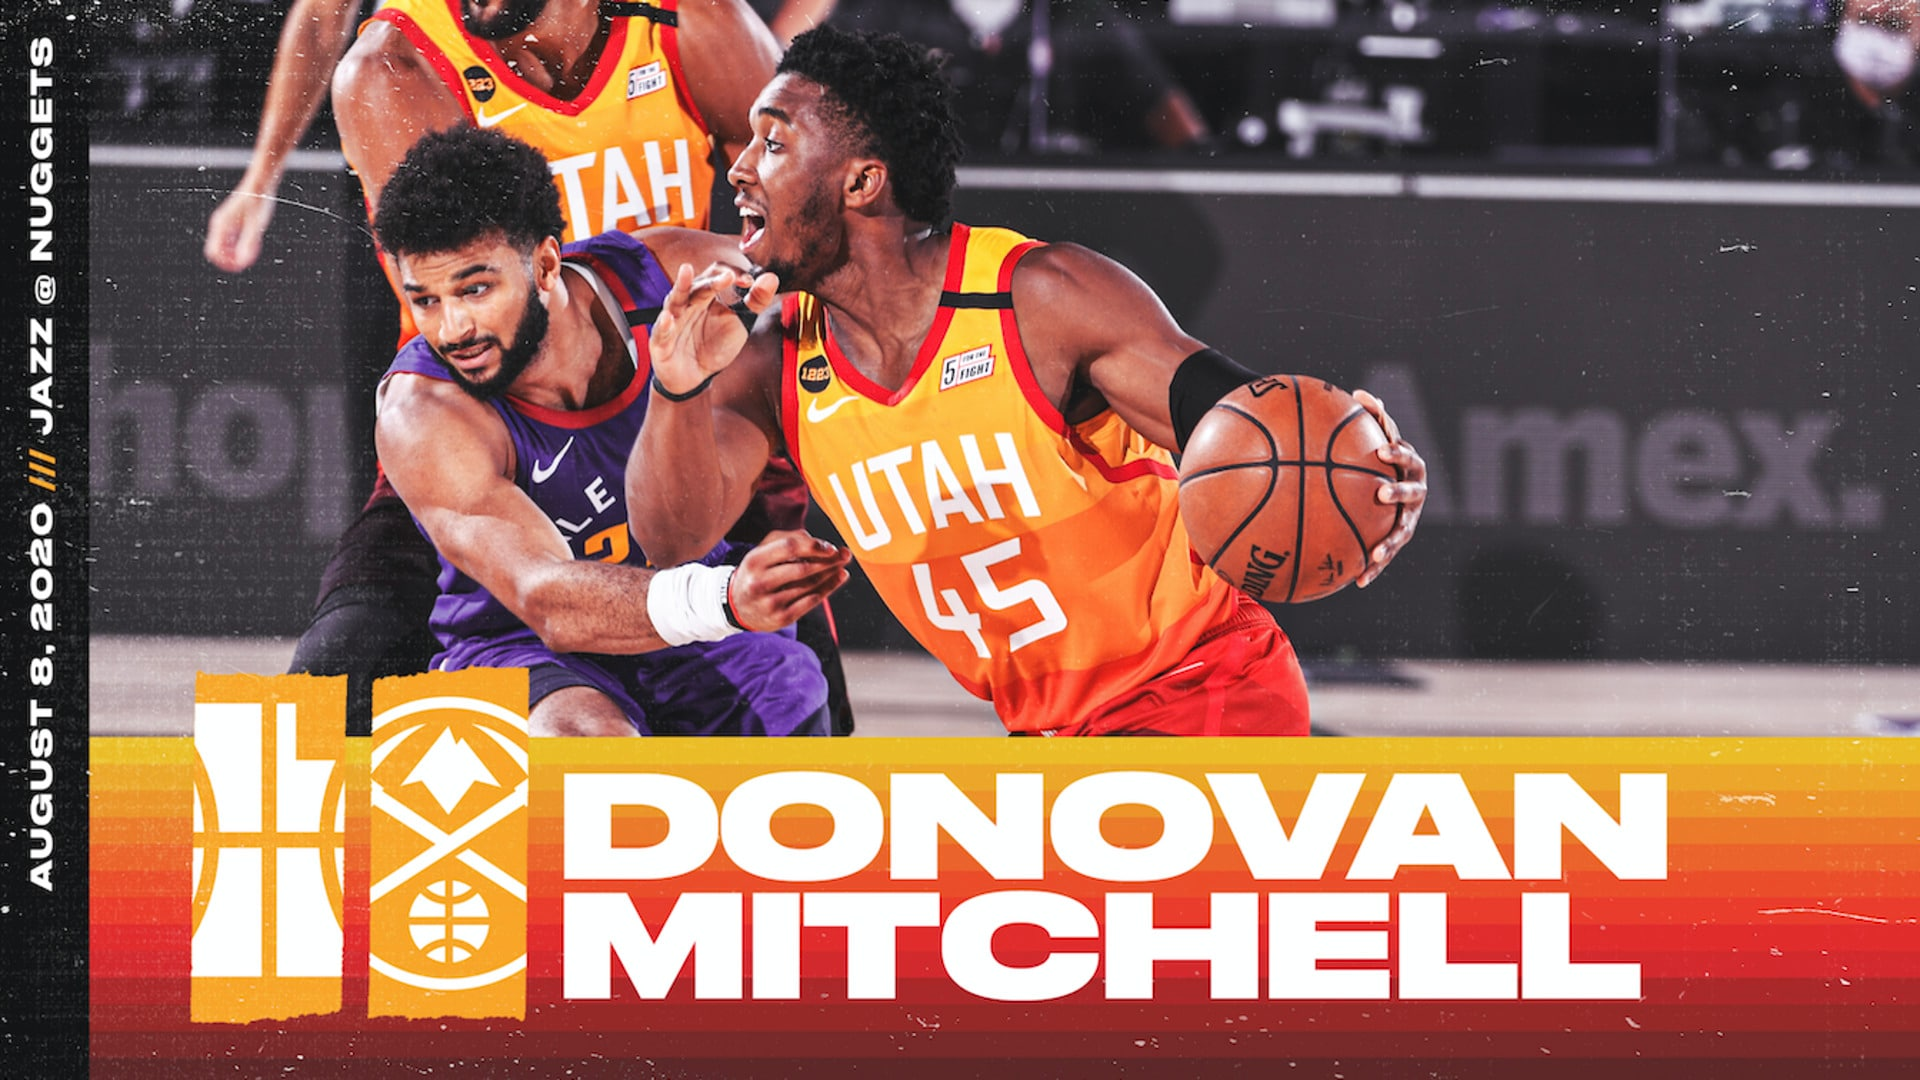 Highlights: Donovan Mitchell — 35 points, 8 assists